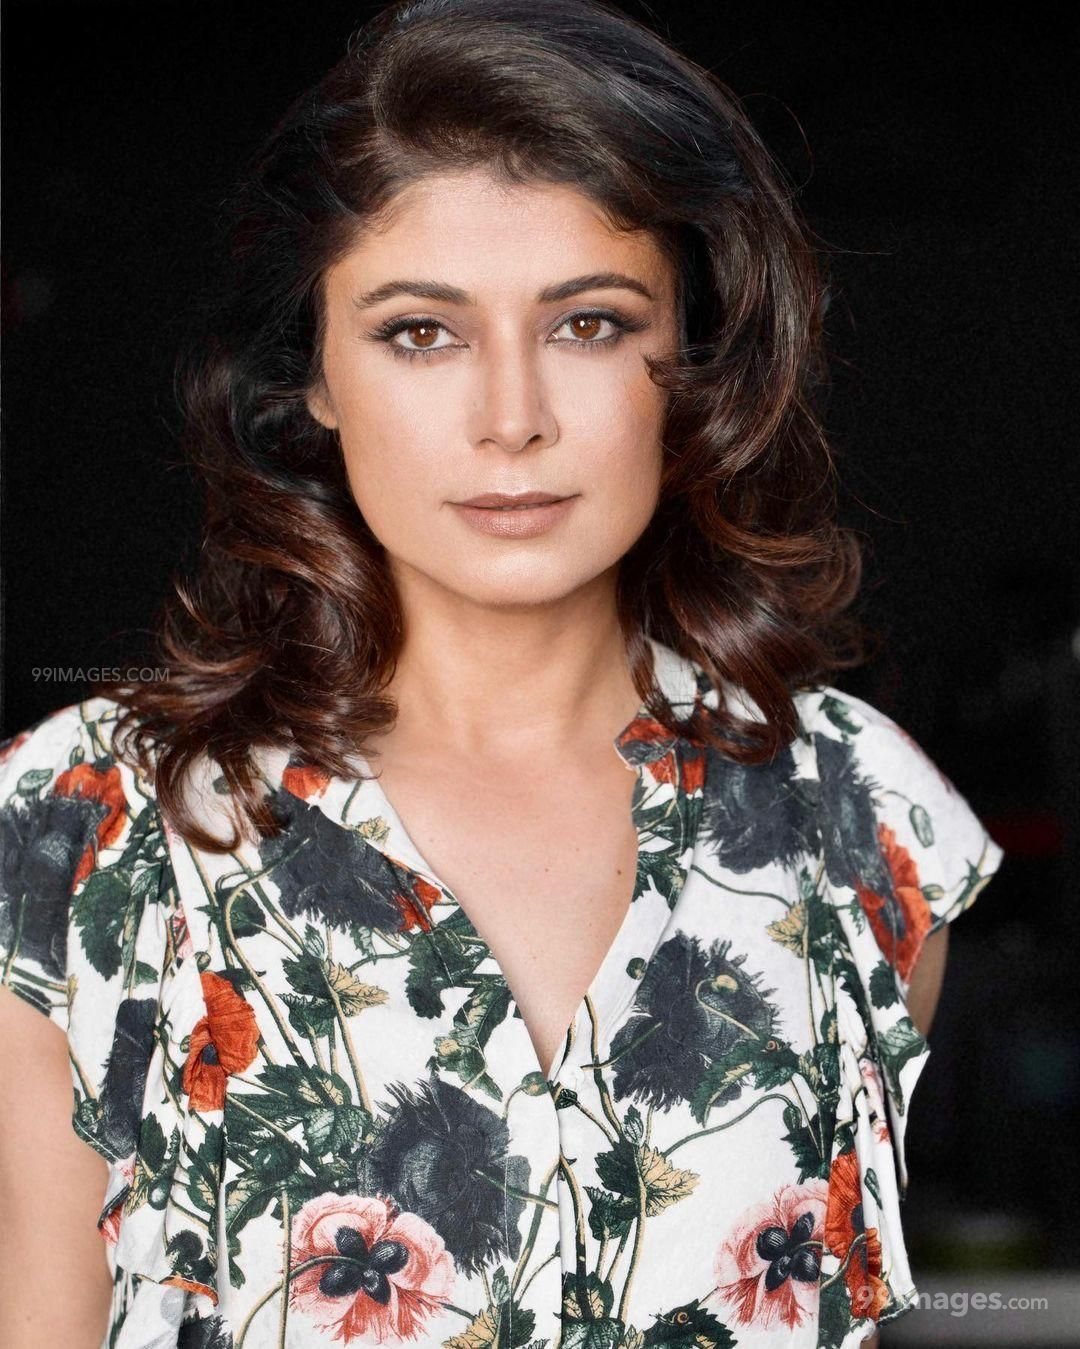 Pooja Batra Beautiful HD Photos & Mobile Wallpapers HD (Android/iPhone) (1080p)